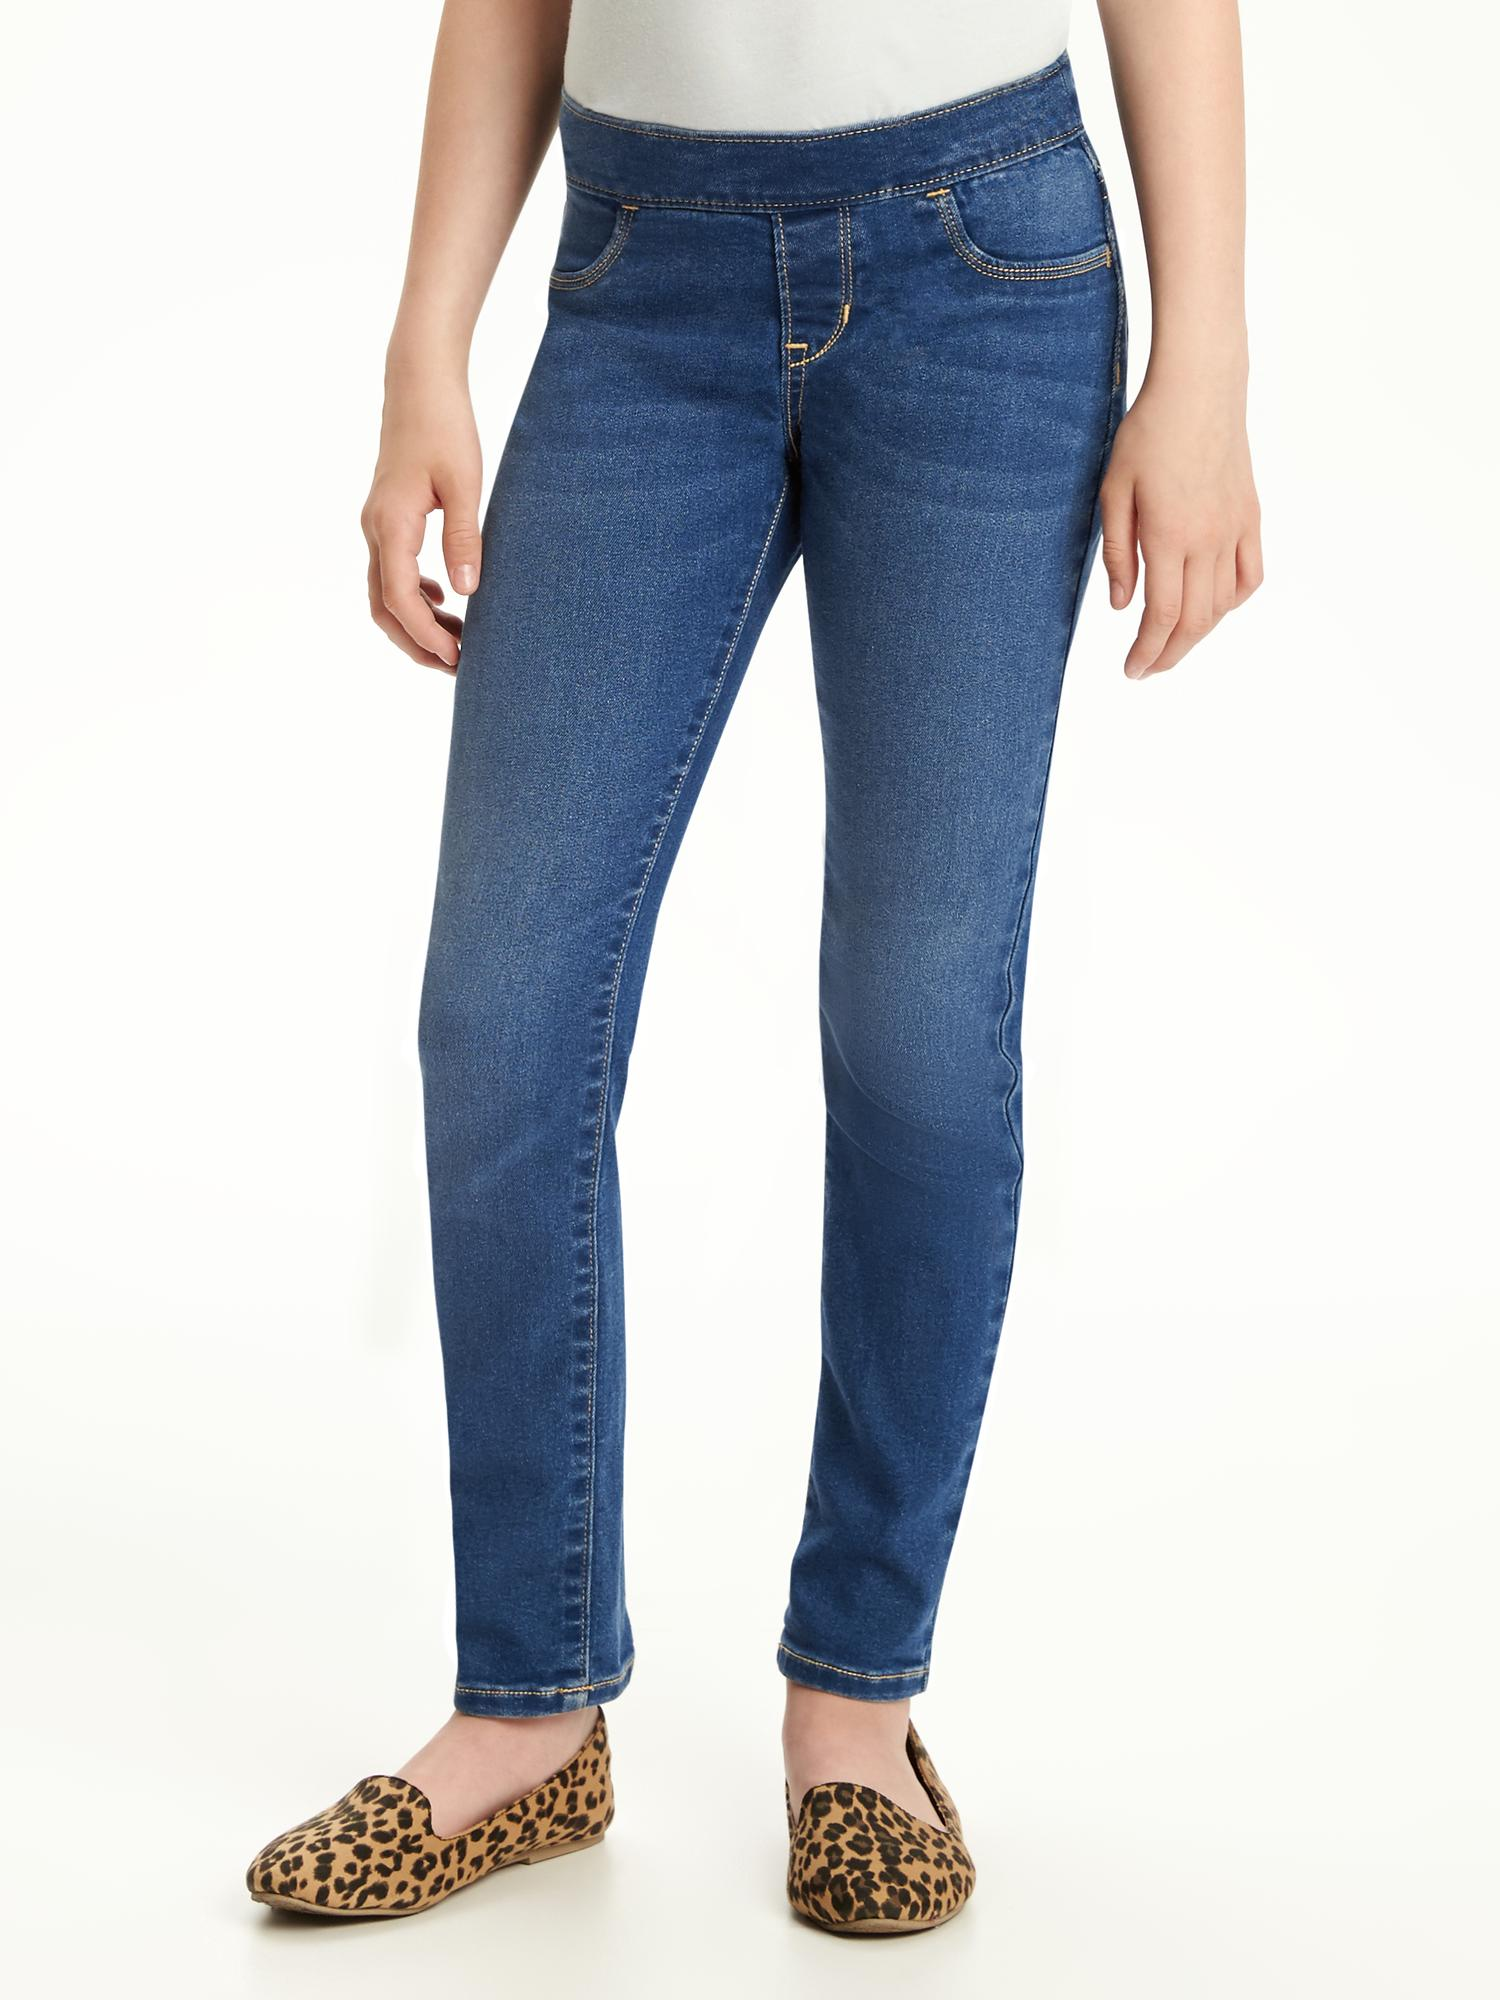 Pull-On Skinny Jeans for Girls | Old Navy